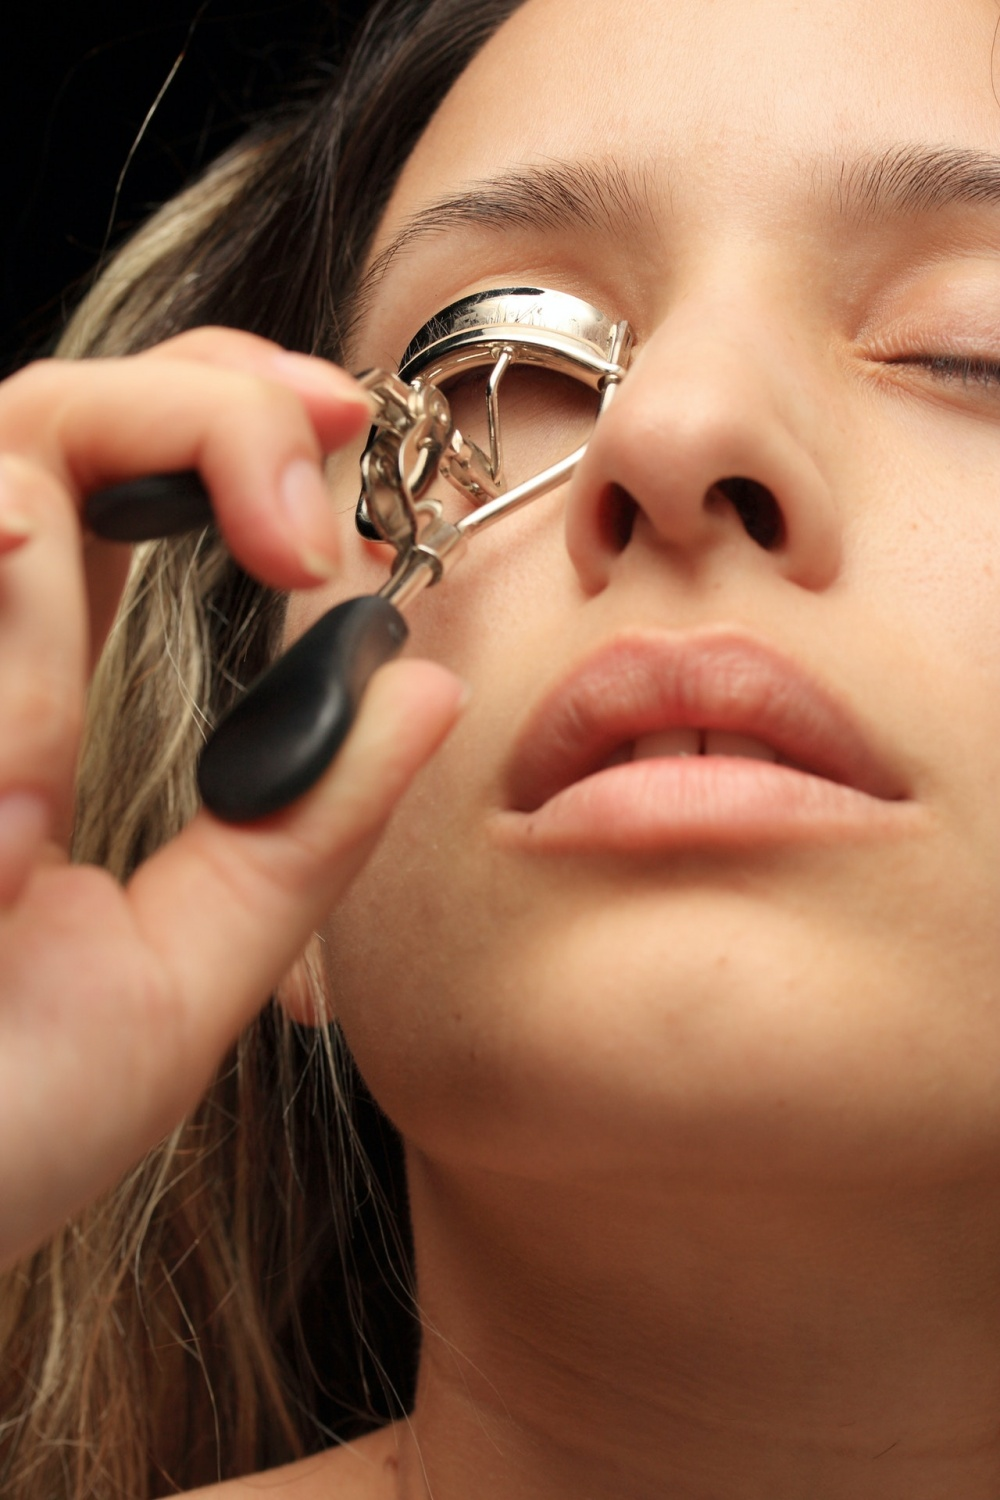 Researching Lash Enhancement Methods? Here's Our Advice